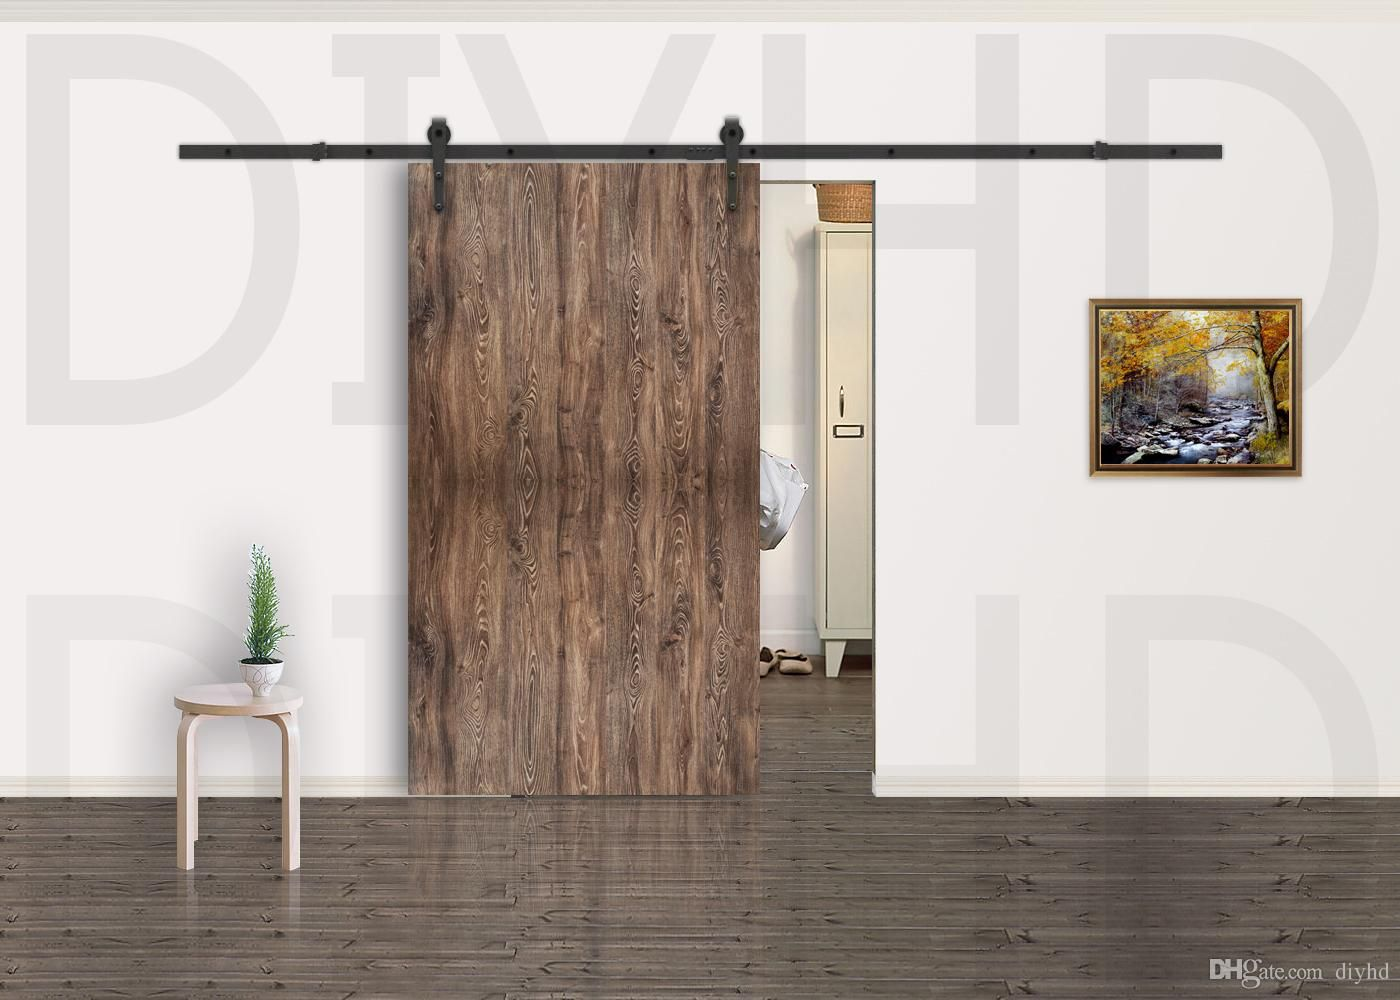 5 8ft Modern Rustic Black Arrow Wheel Sliding Barn Door